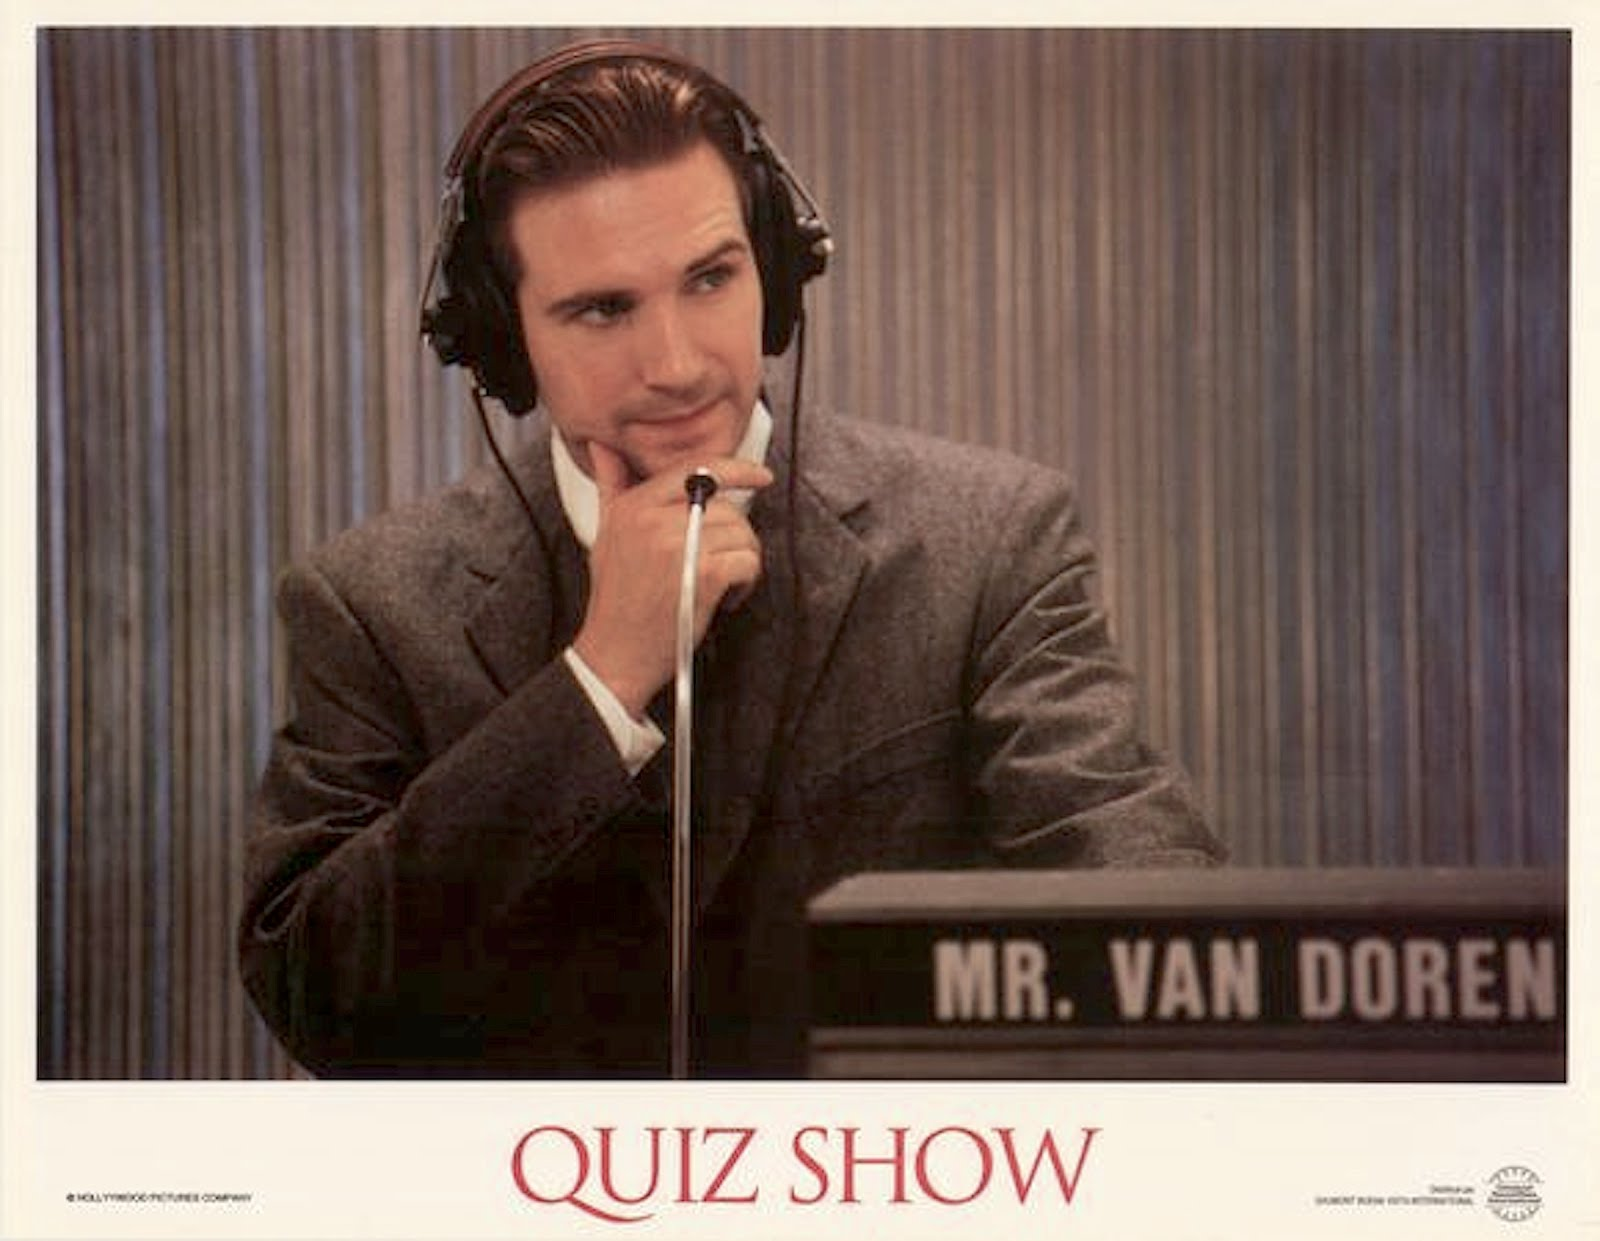 REDFORD'S QUIZ SHOW at 20